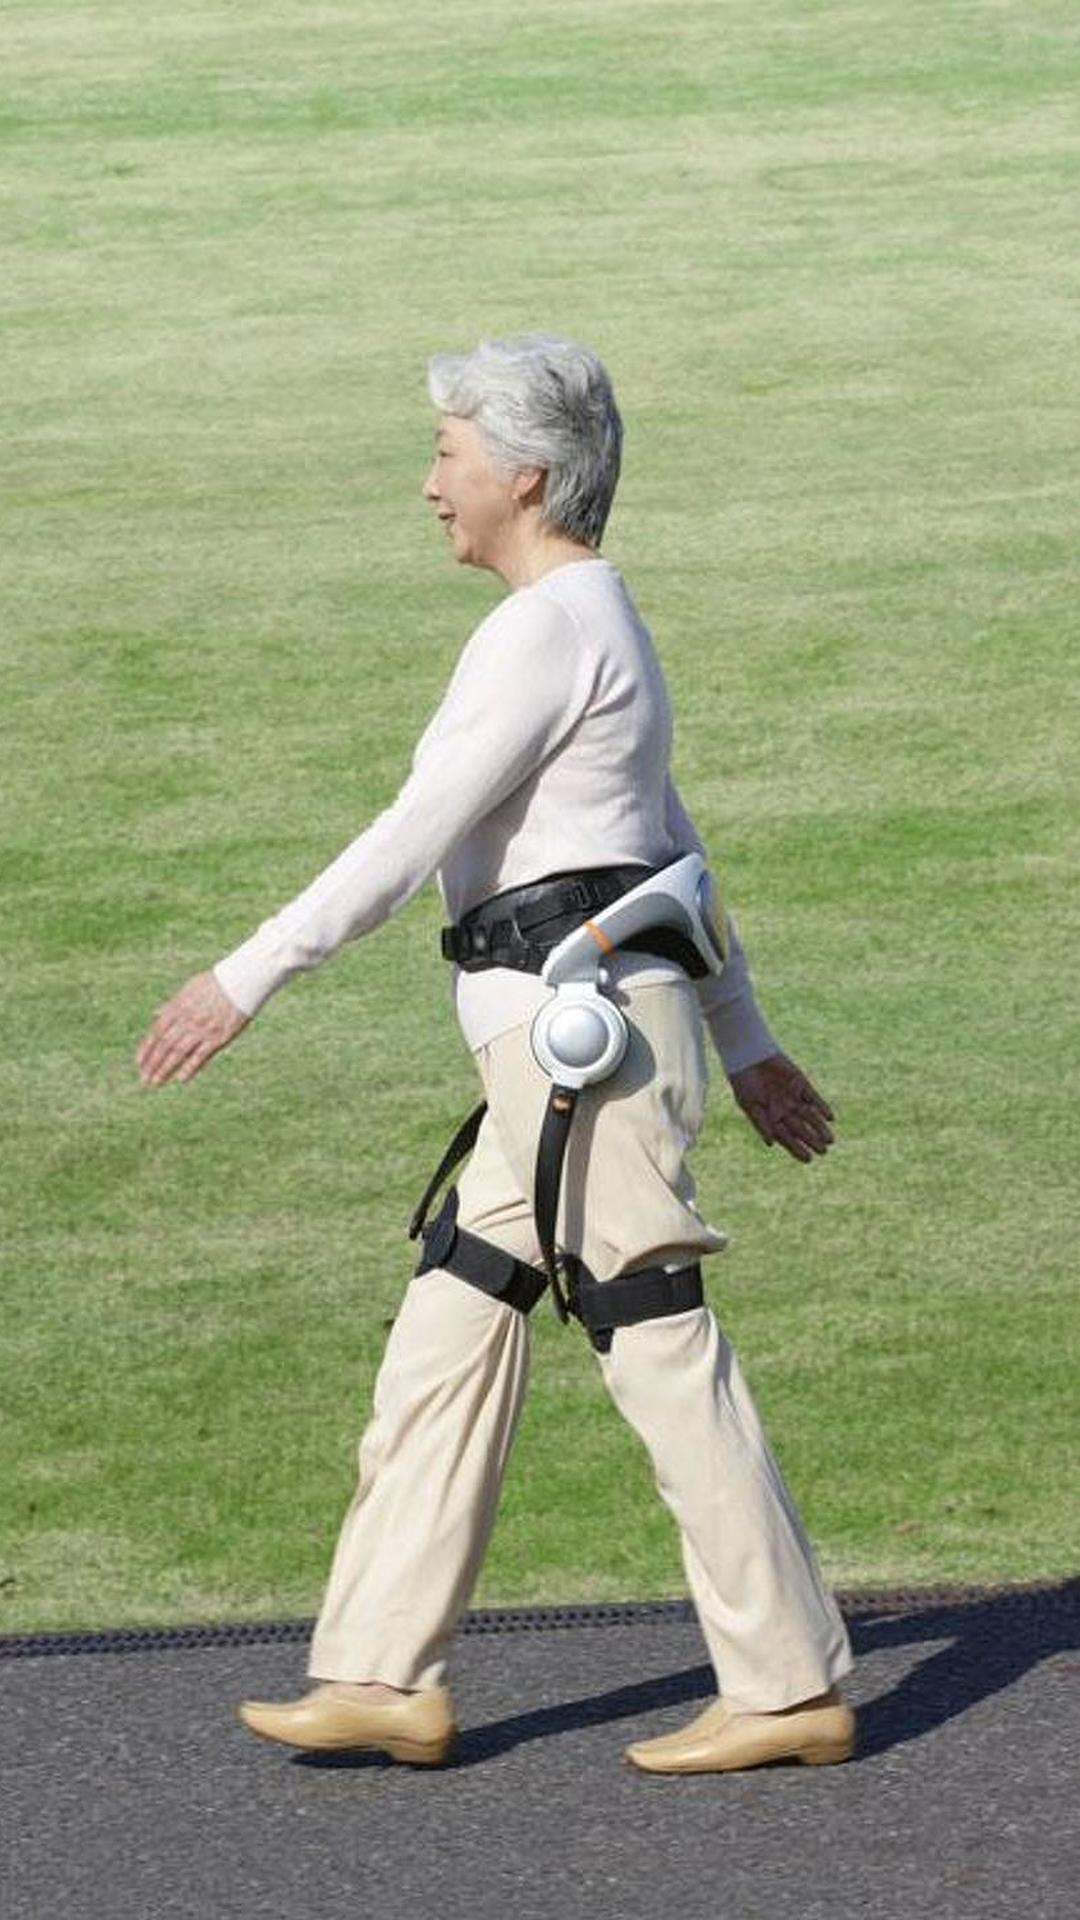 Honda Walking Assist Device introduced